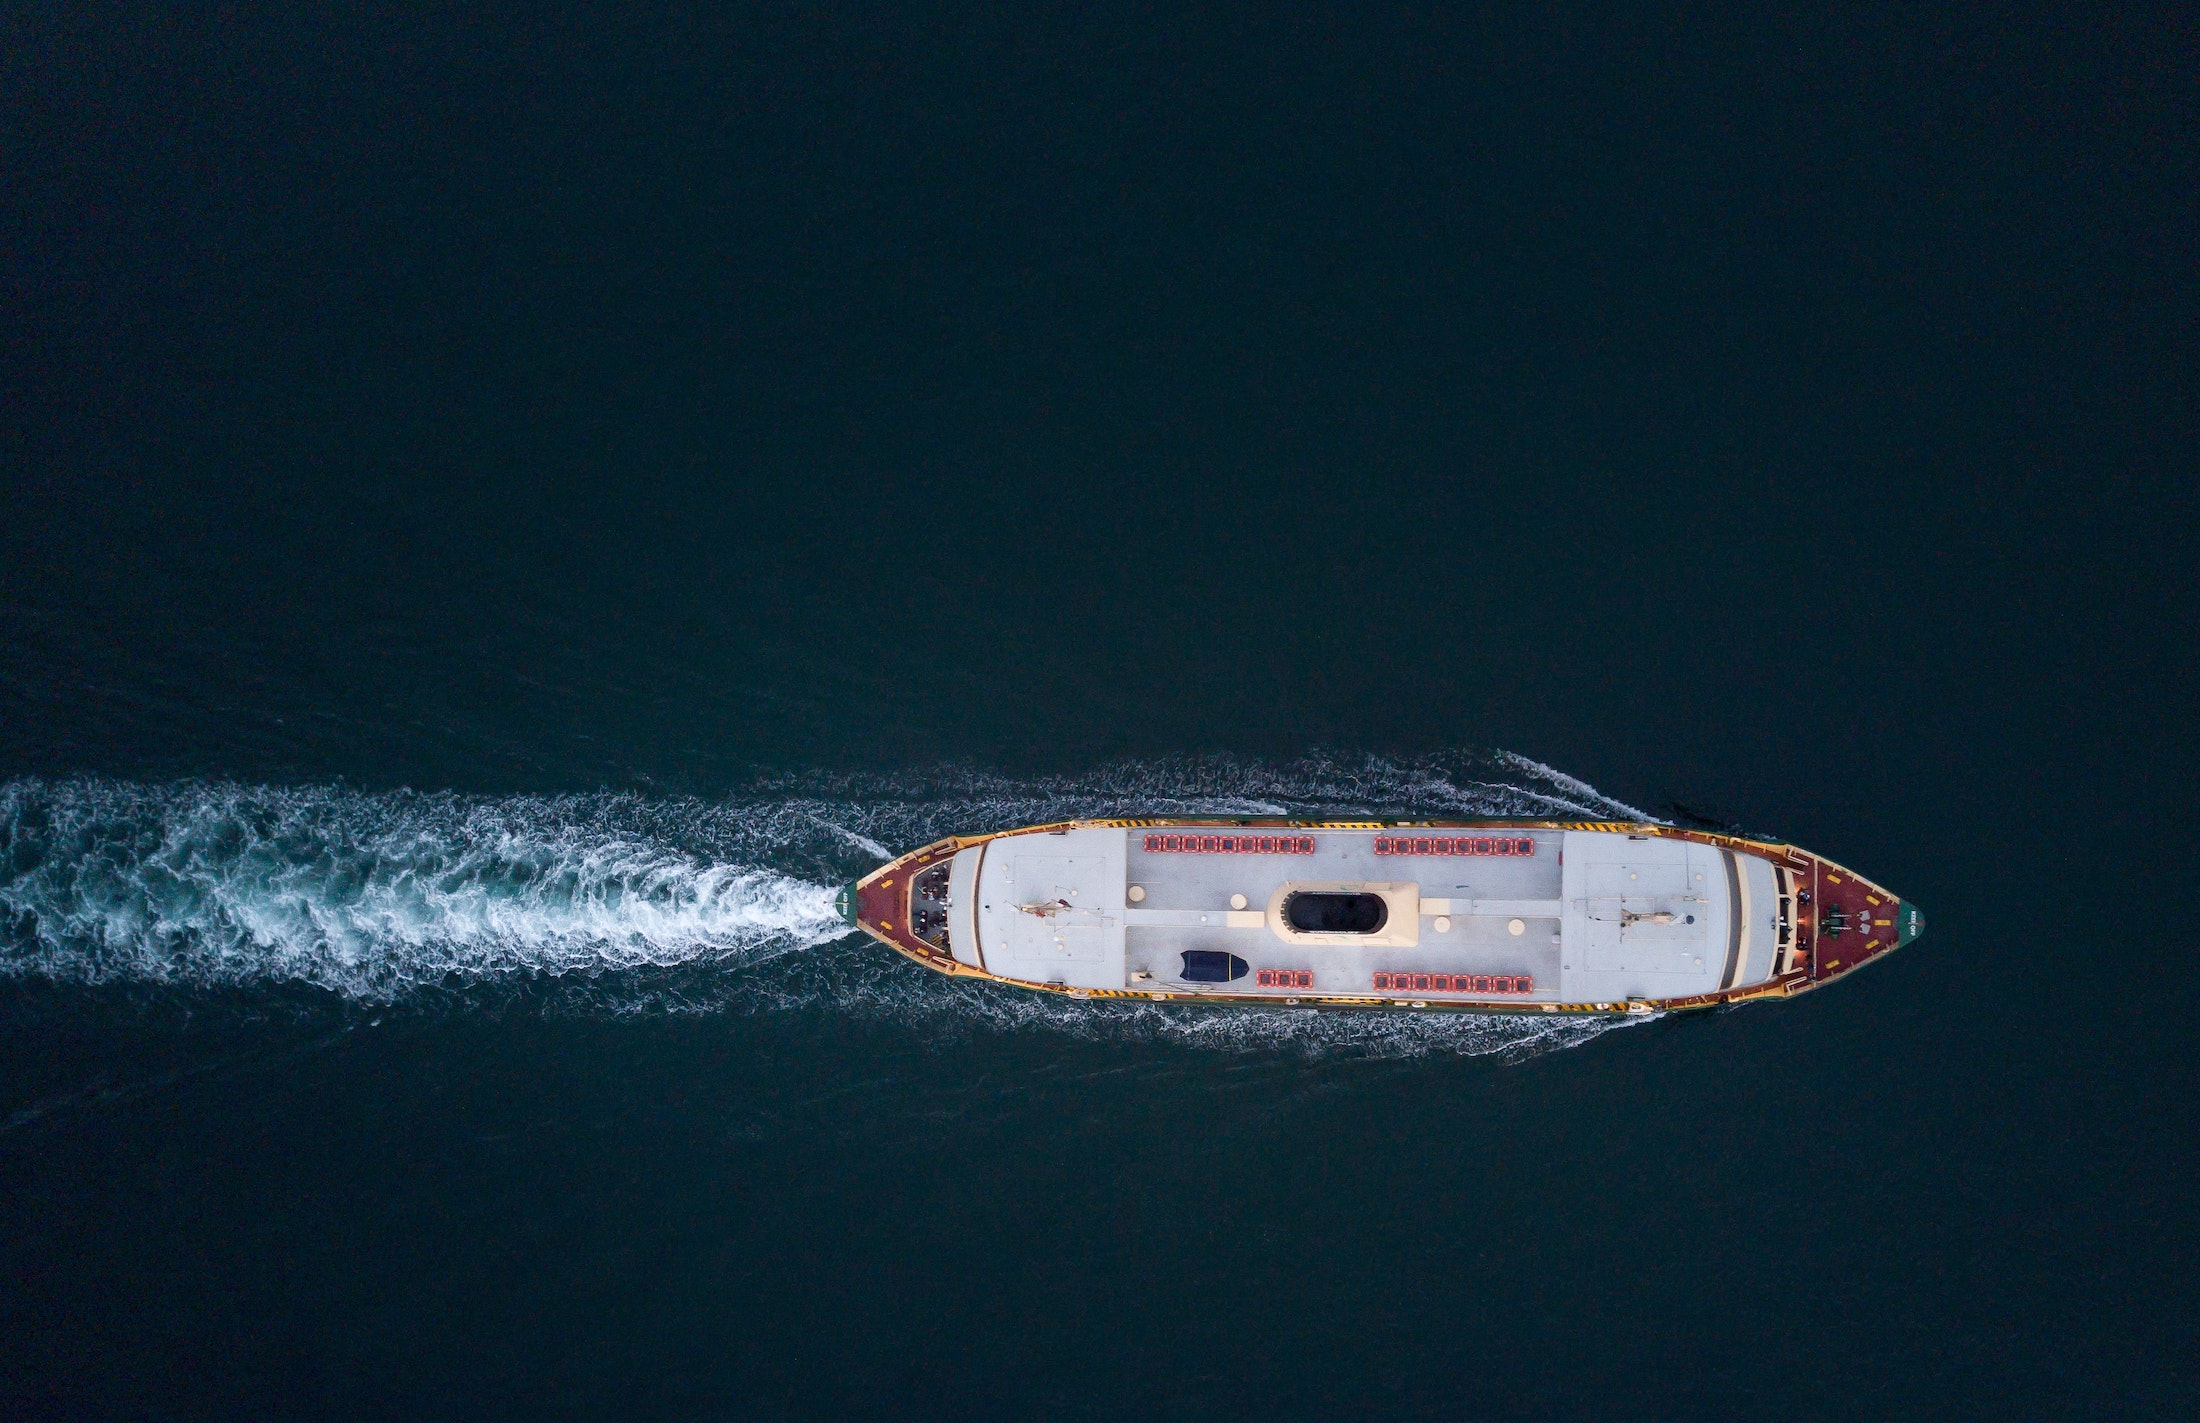 aerial-view-of-ship-on-body-of-water-1556991